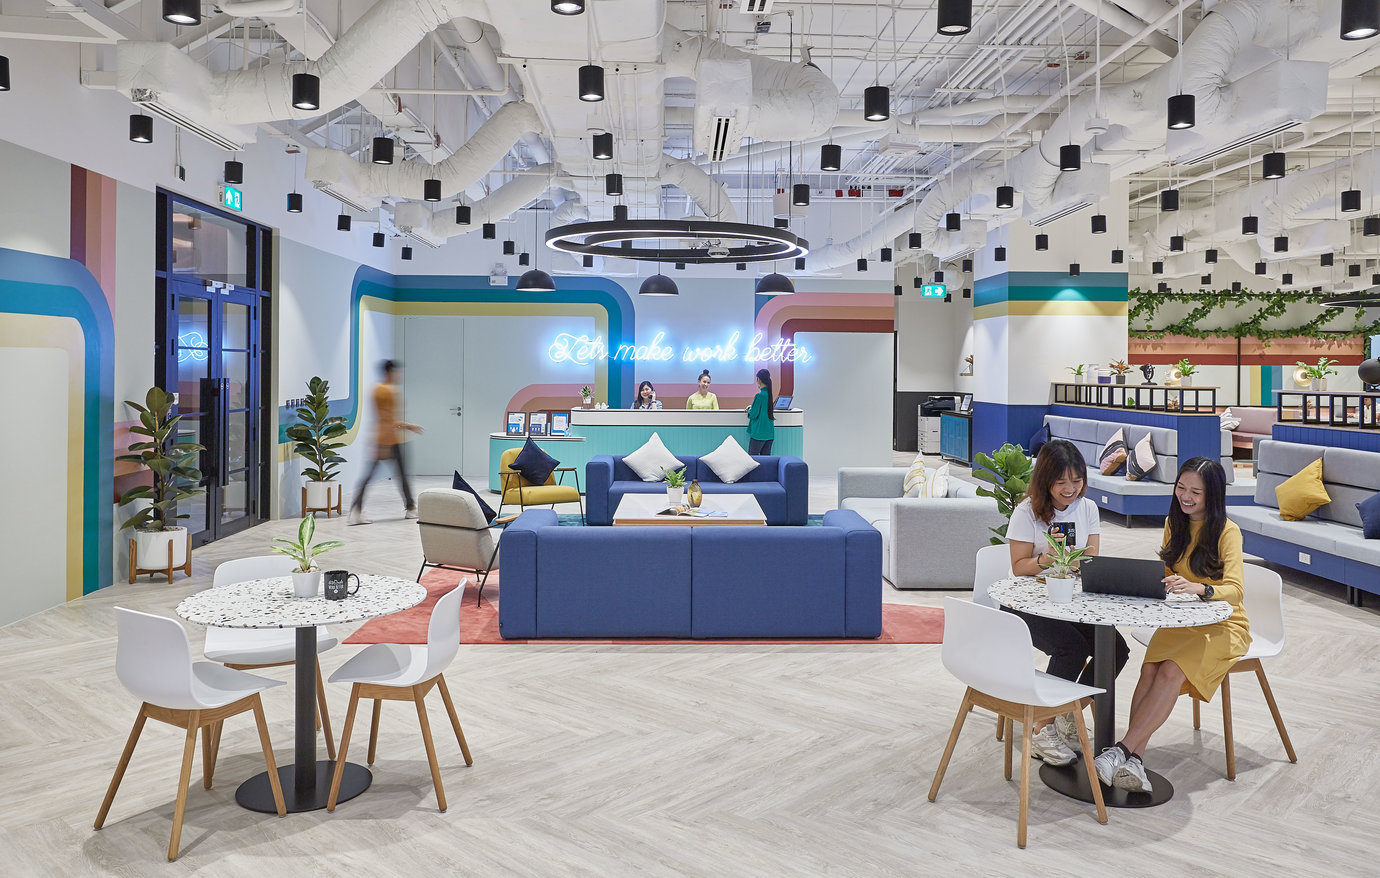 JustCo is Optimistic on the Future of Flexible Workspaces as Demand Rises  in the New Normal - Singapore Coworking Space & Hot Desking Office   JustCo